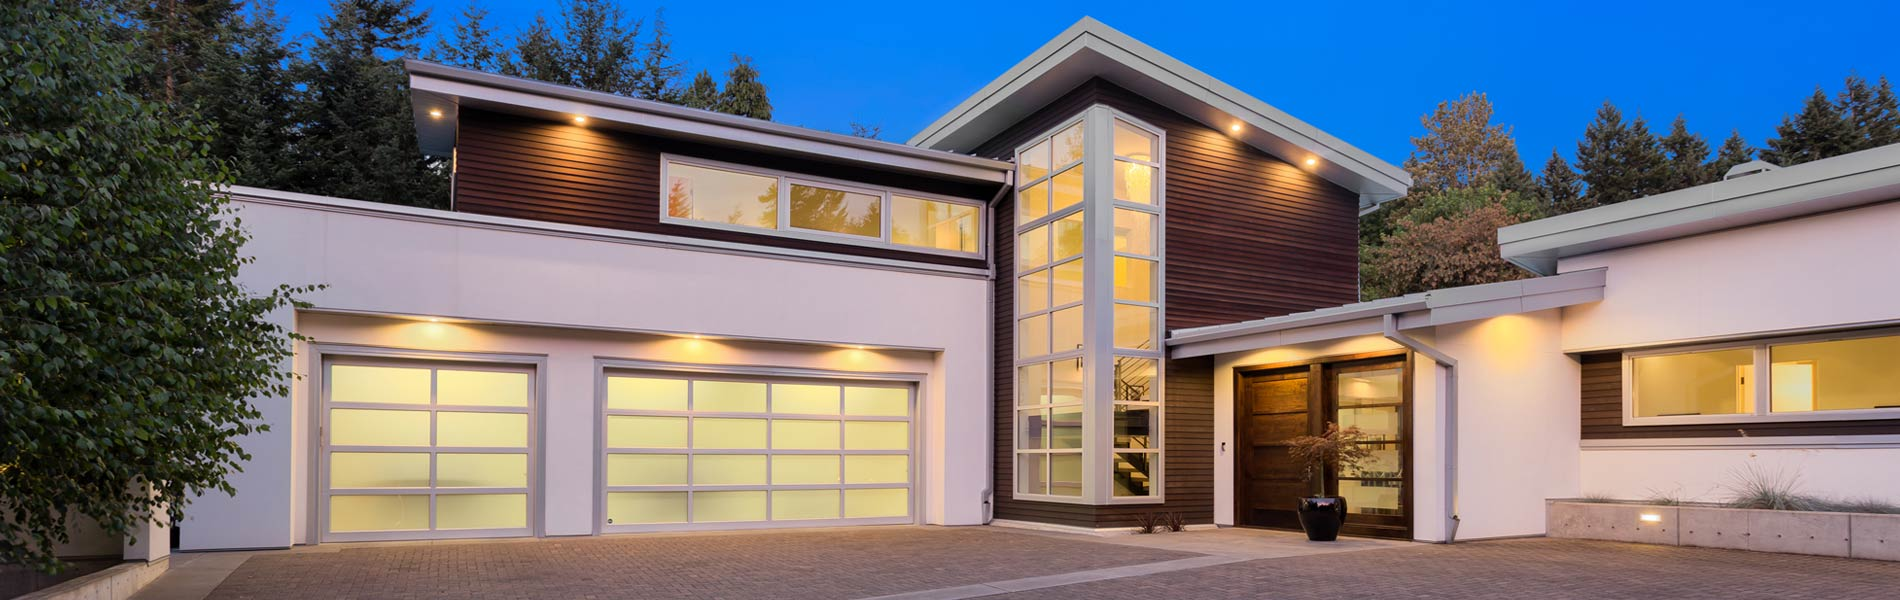 Garage Doors Store Repairs Berkeley, CA 510-543-1422